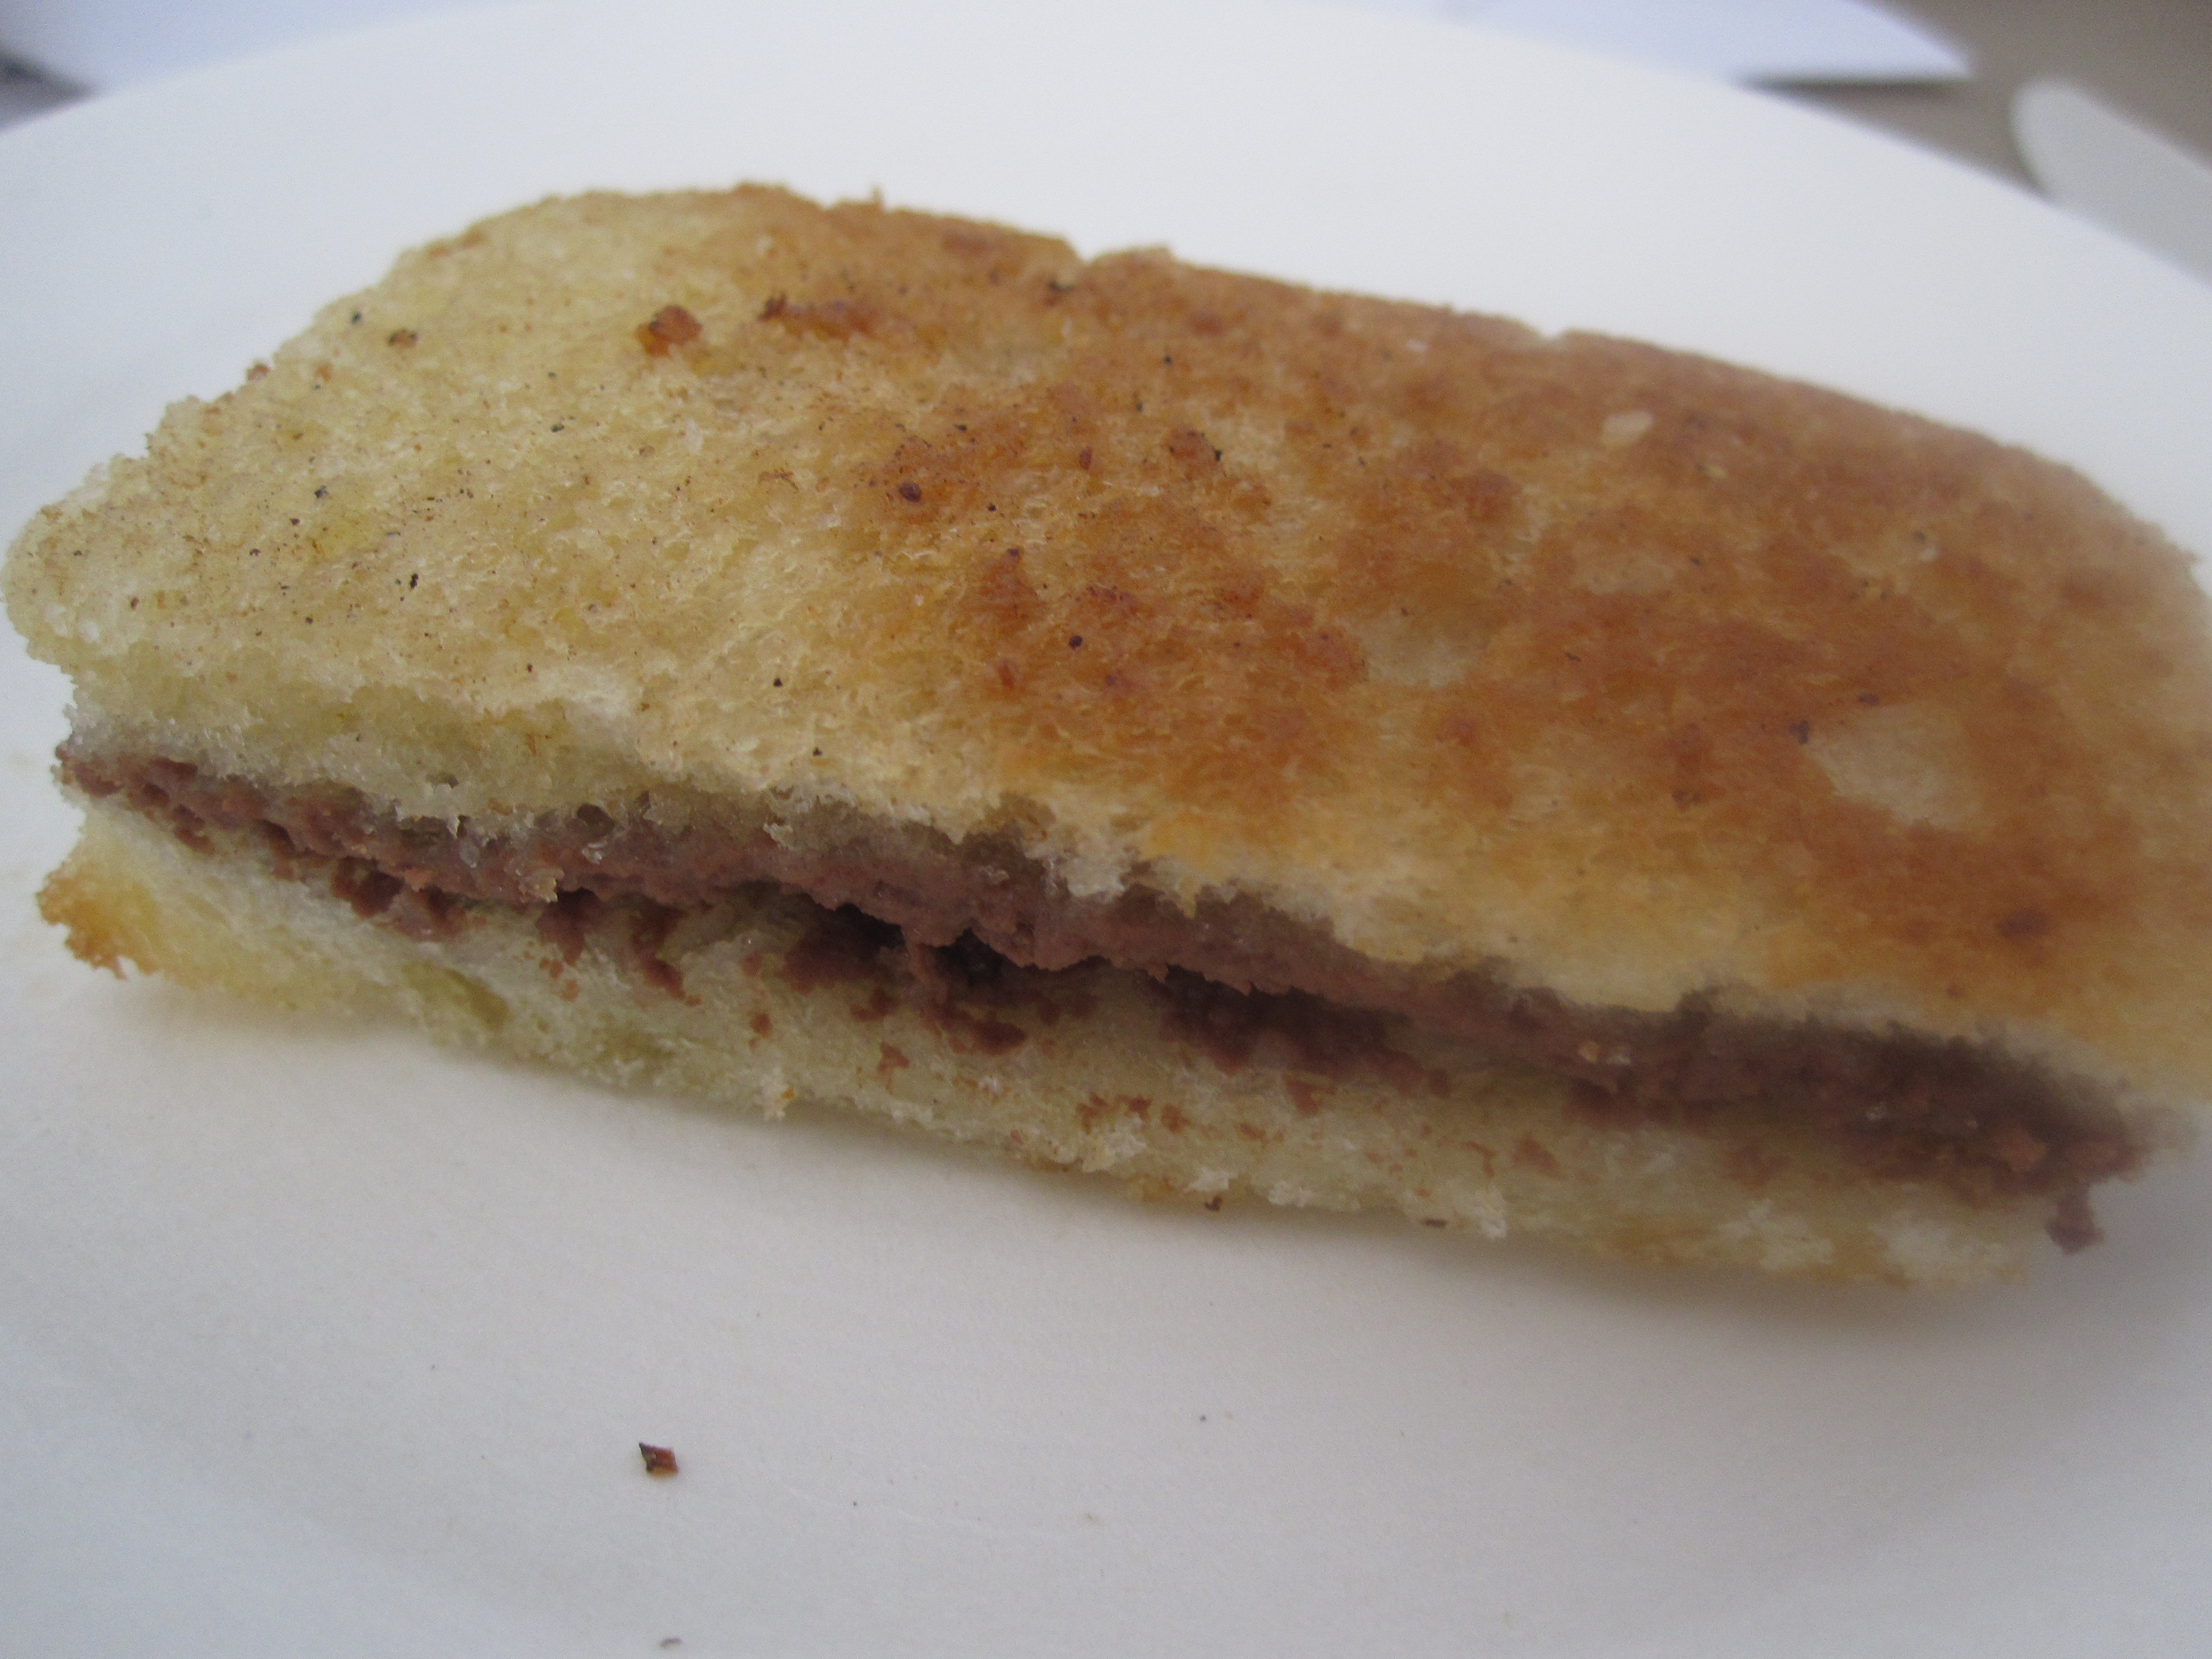 The final sandwich was a dainty dessert sandwich with goat cheese and nutella. Amazing!